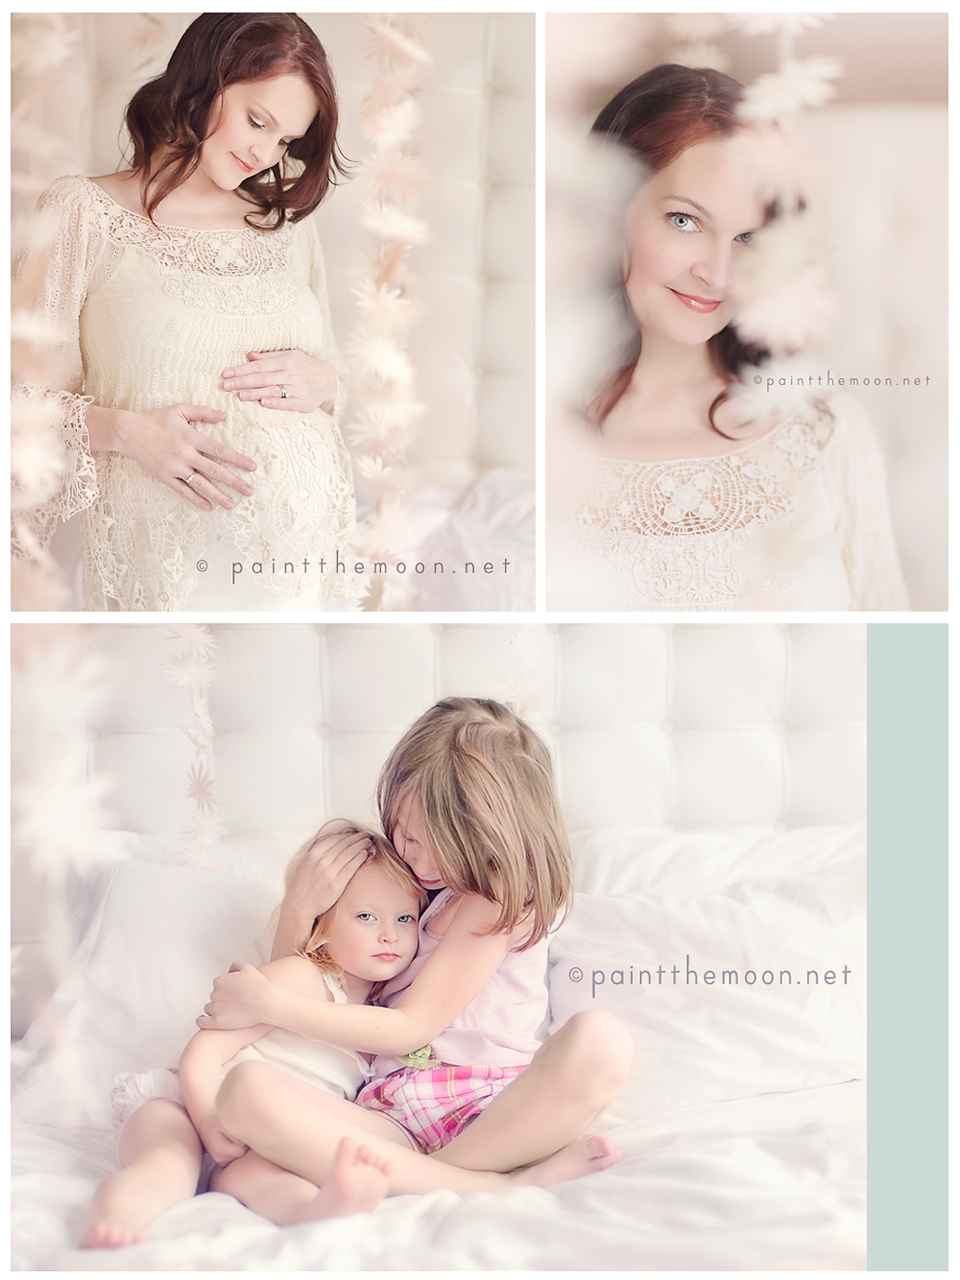 Maternity Photography | Soft, Indoor, Natural Light - Creamy, Film | Paint the Moon Photoshop Actions